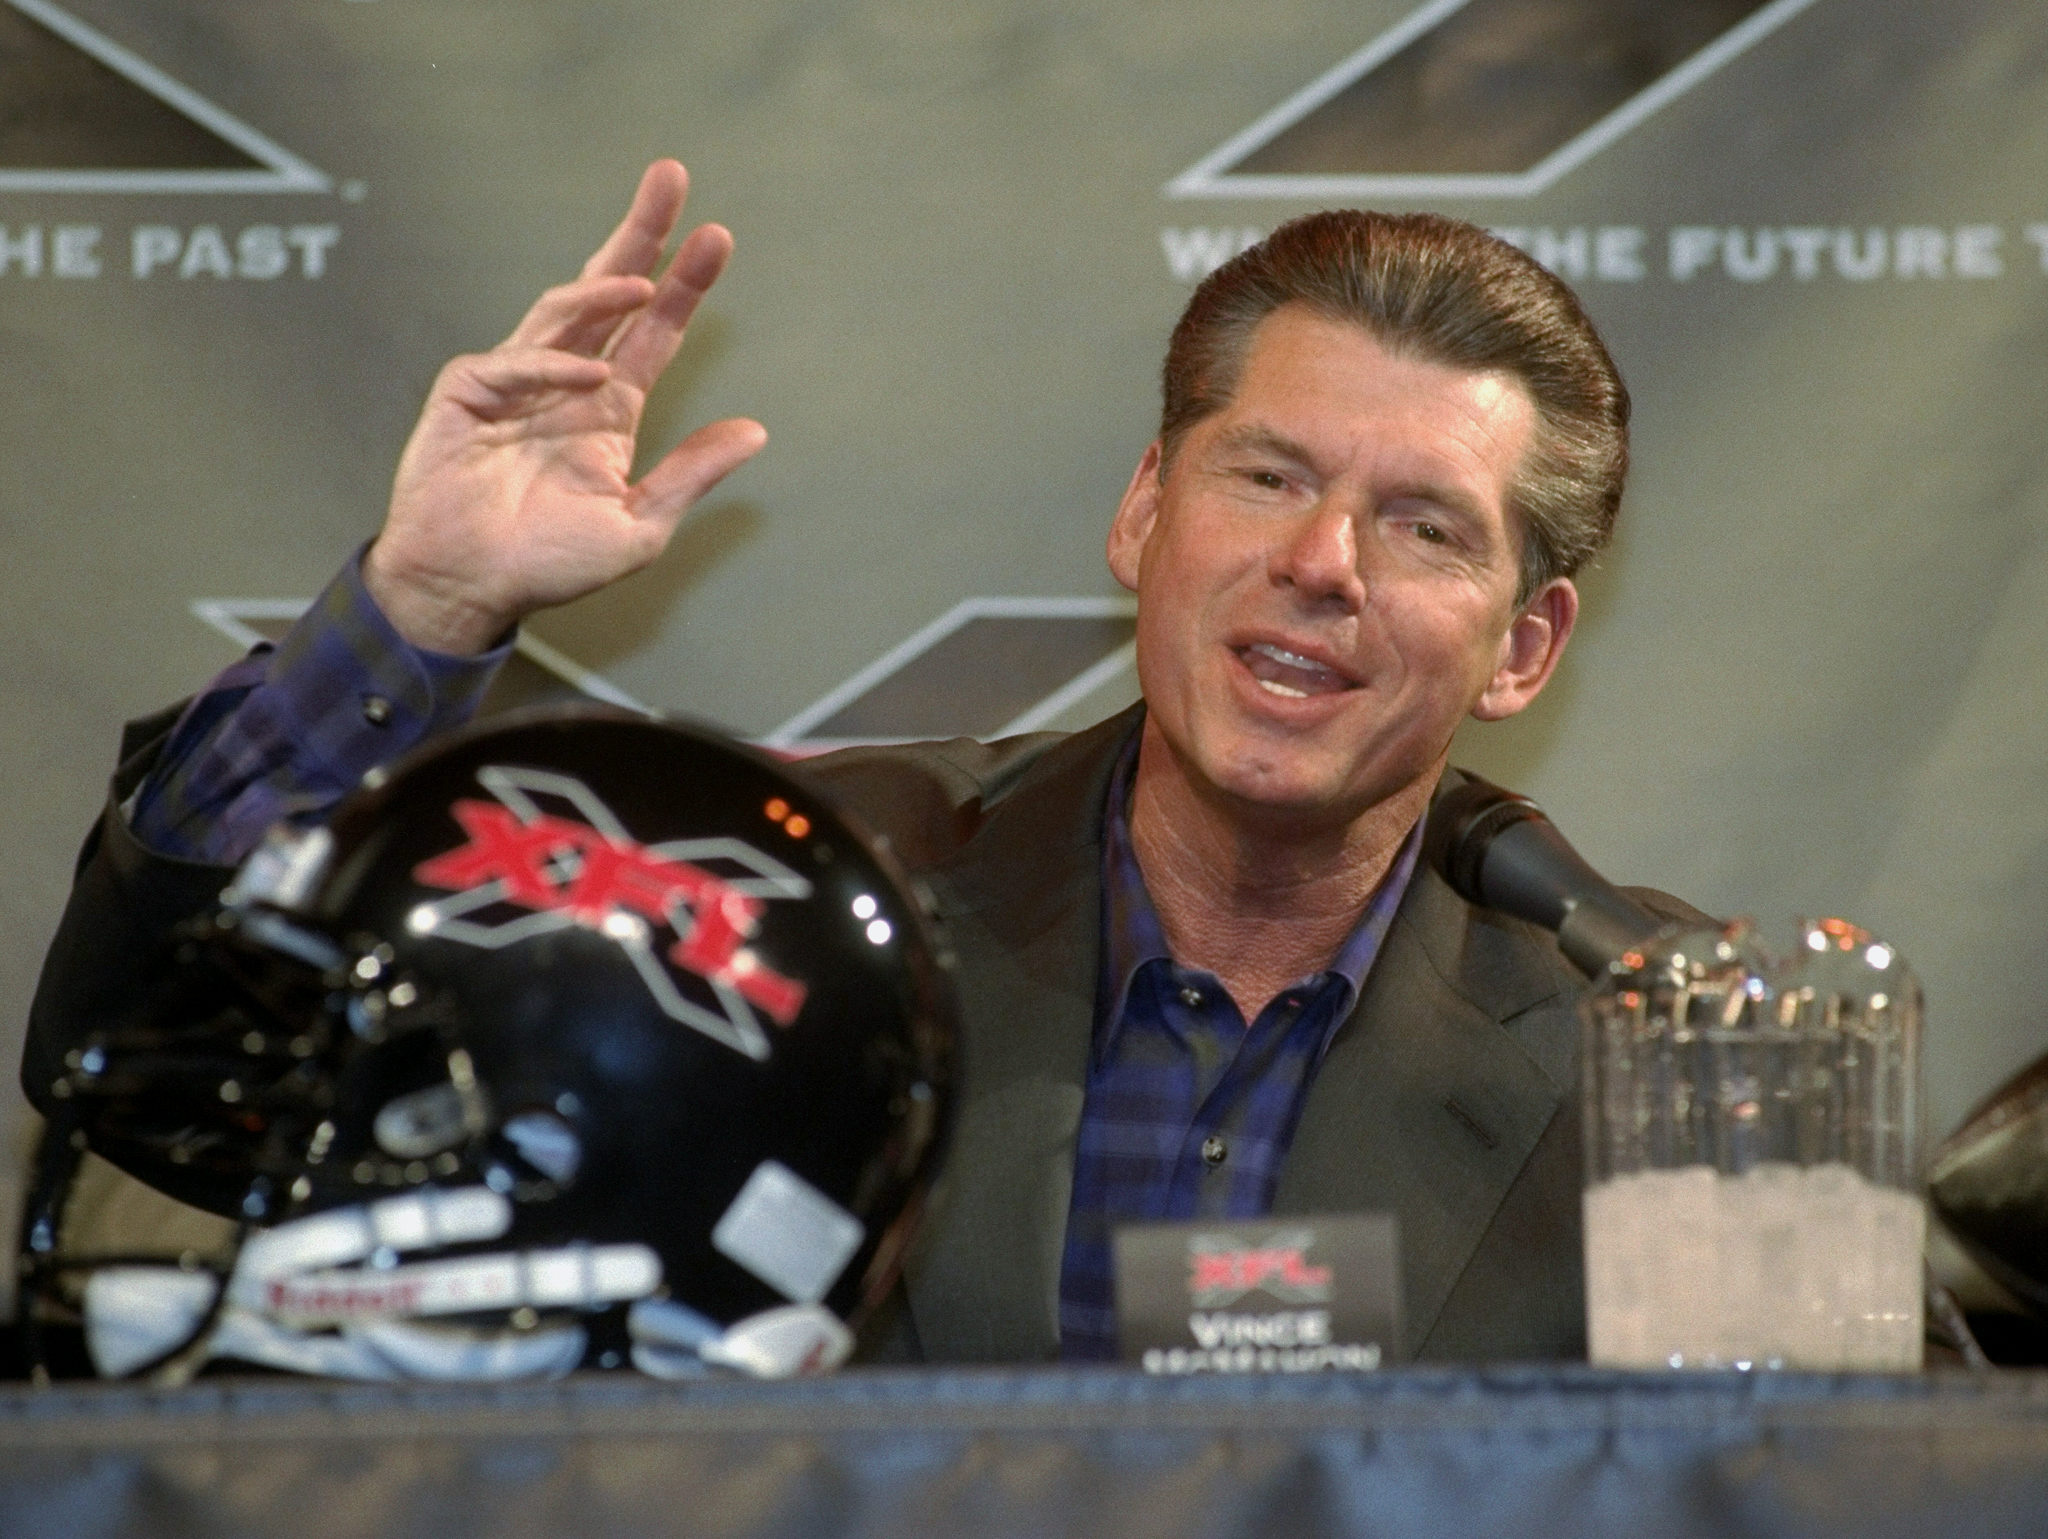 World Wrestling Federation chairman Vince McMahon speaks to the media to announce the creation of the XFL, a new professional football league.